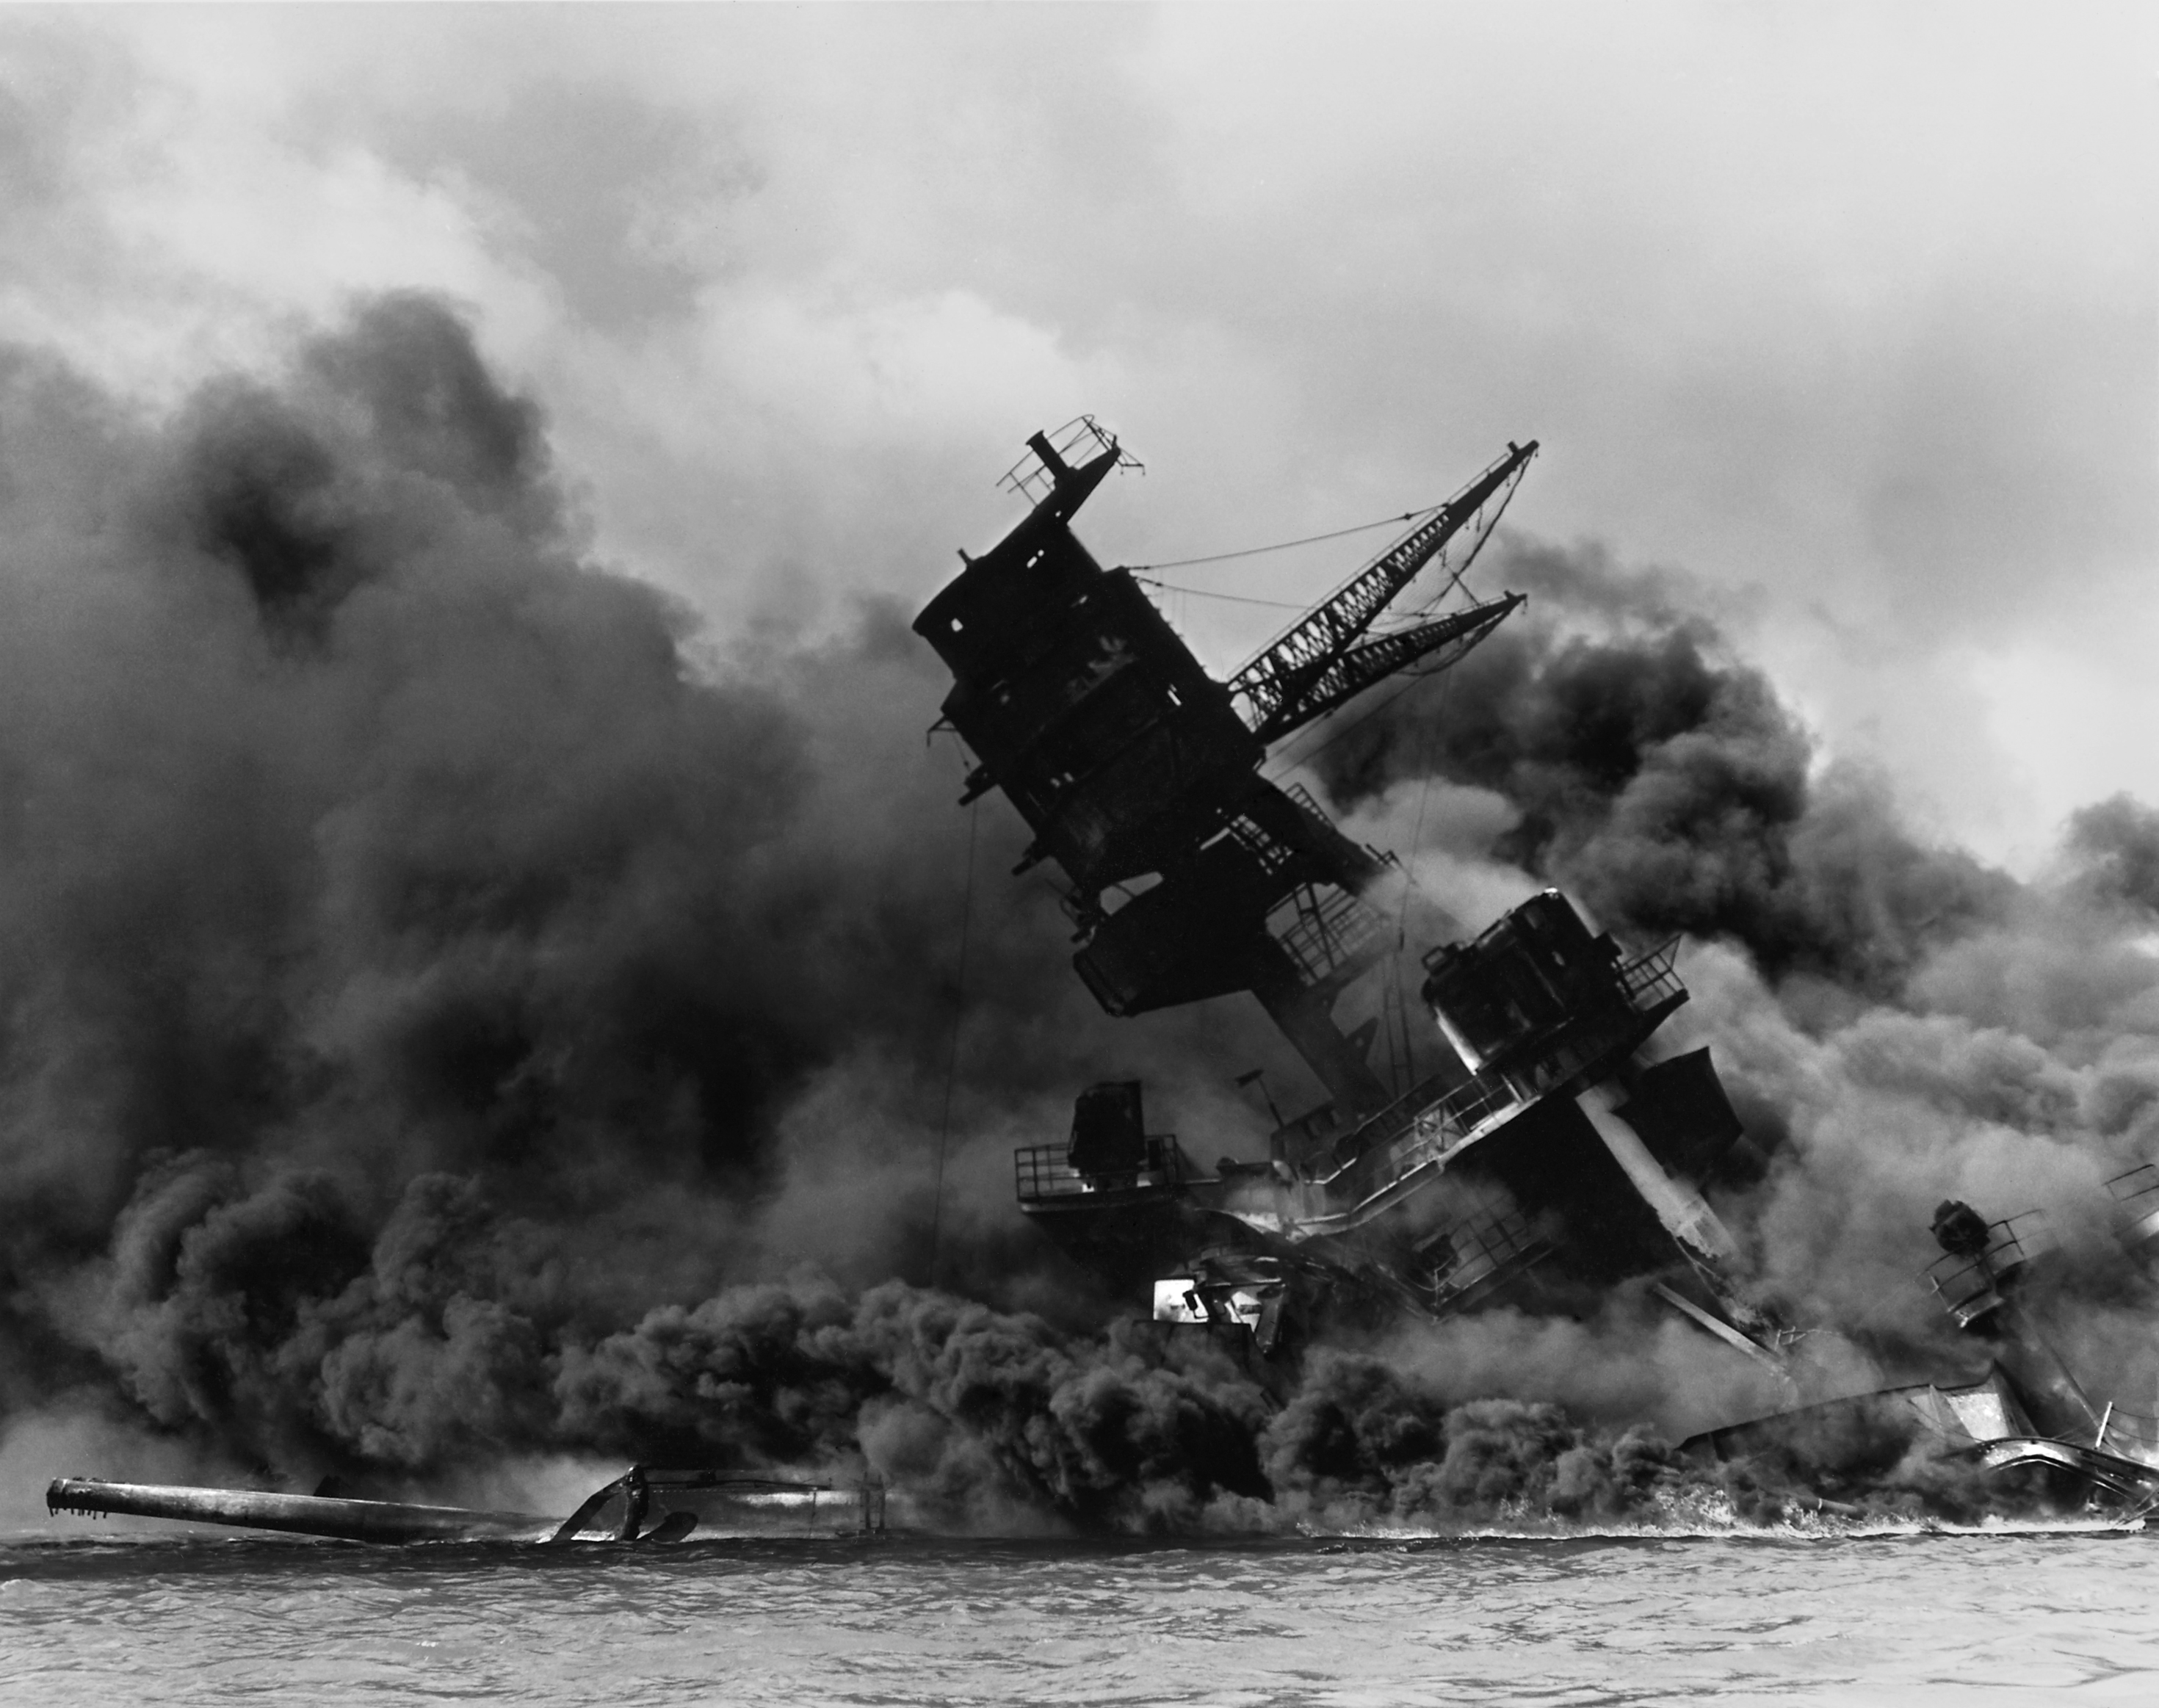 Description The USS Arizona (BB-39) burning after the Japanese attack